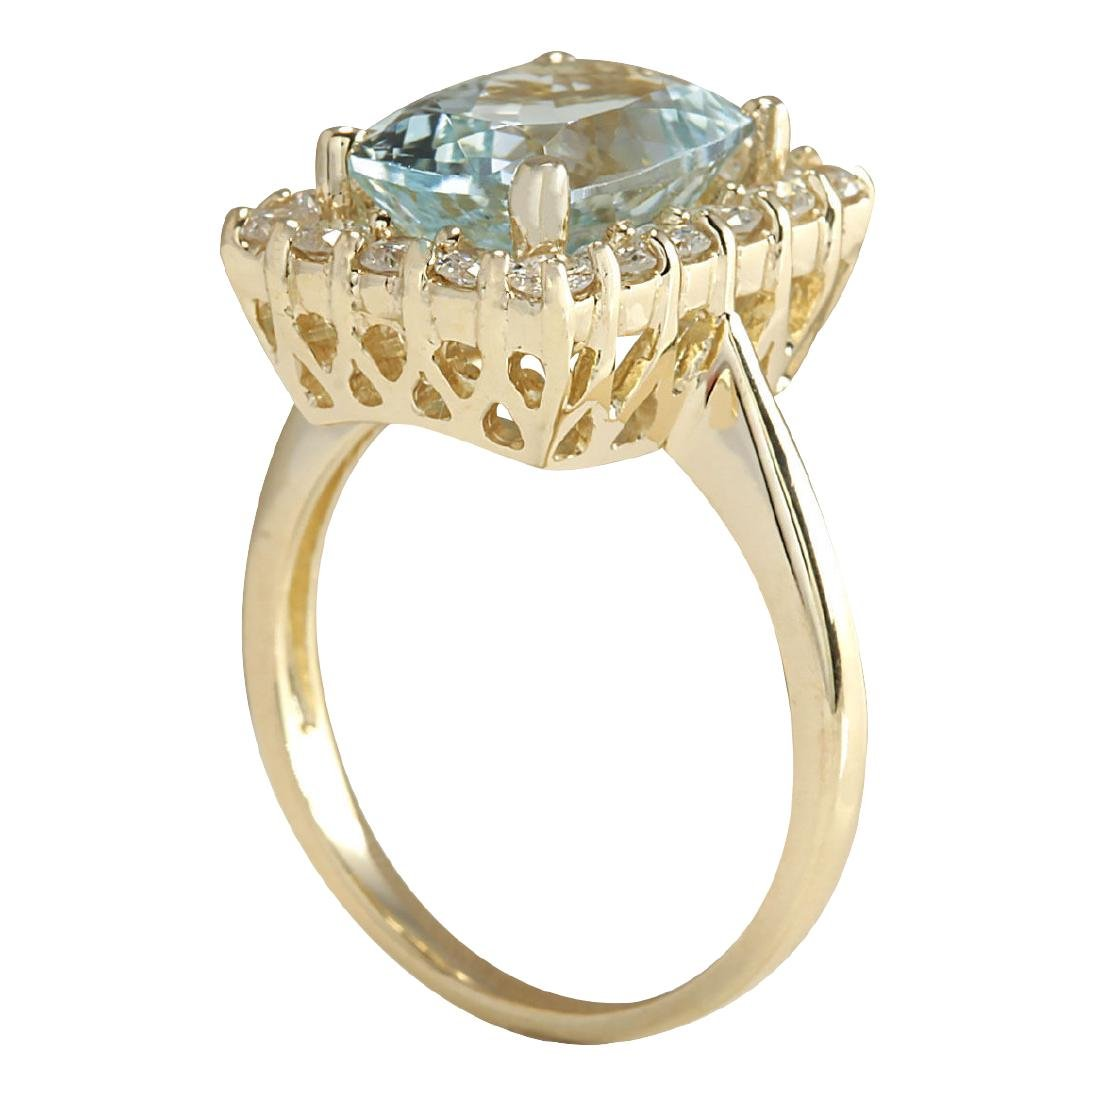 4.54CTW Natural Aquamarine And Diamond Ring In 18K - 3